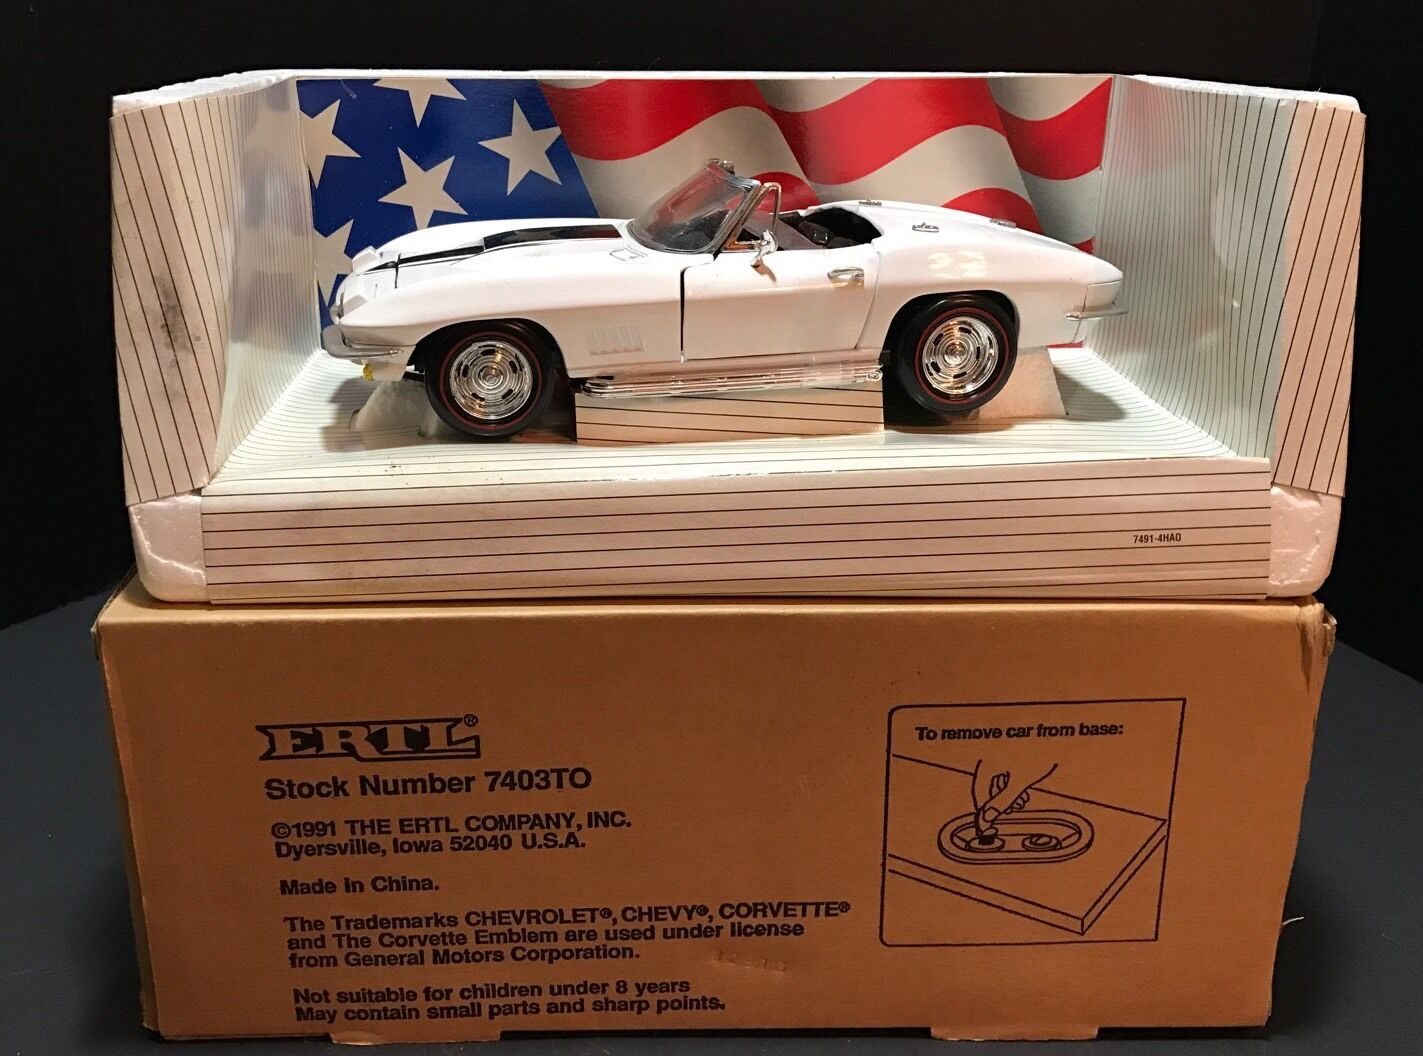 ERTL 1967 CHEVROLET CORVETTE L-88 Blanc 7403 To American Muscle CABRIOLET CHEVY